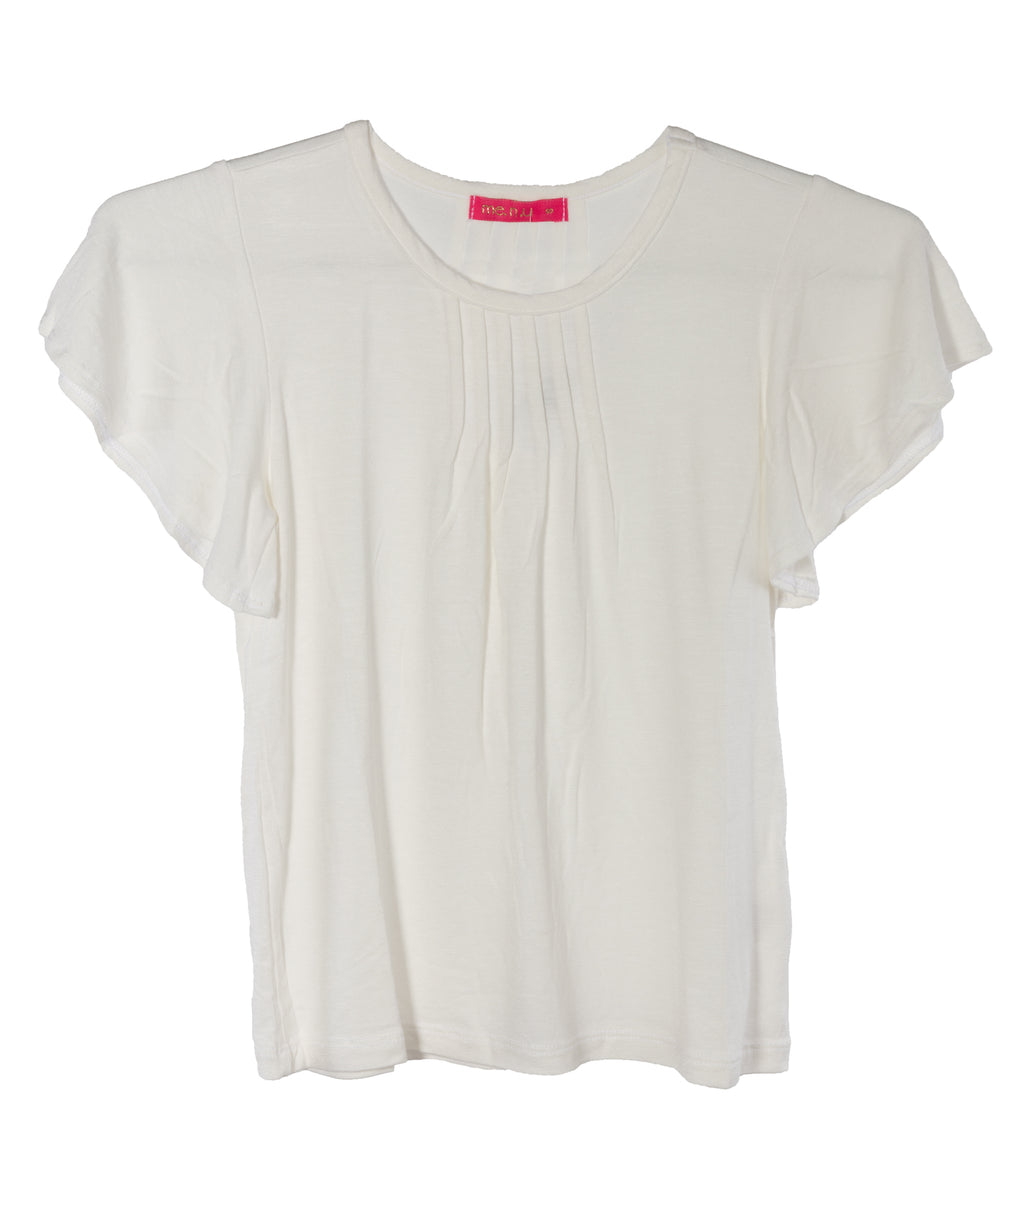 Me.n.u. Girls Ivory Pintuck Tee